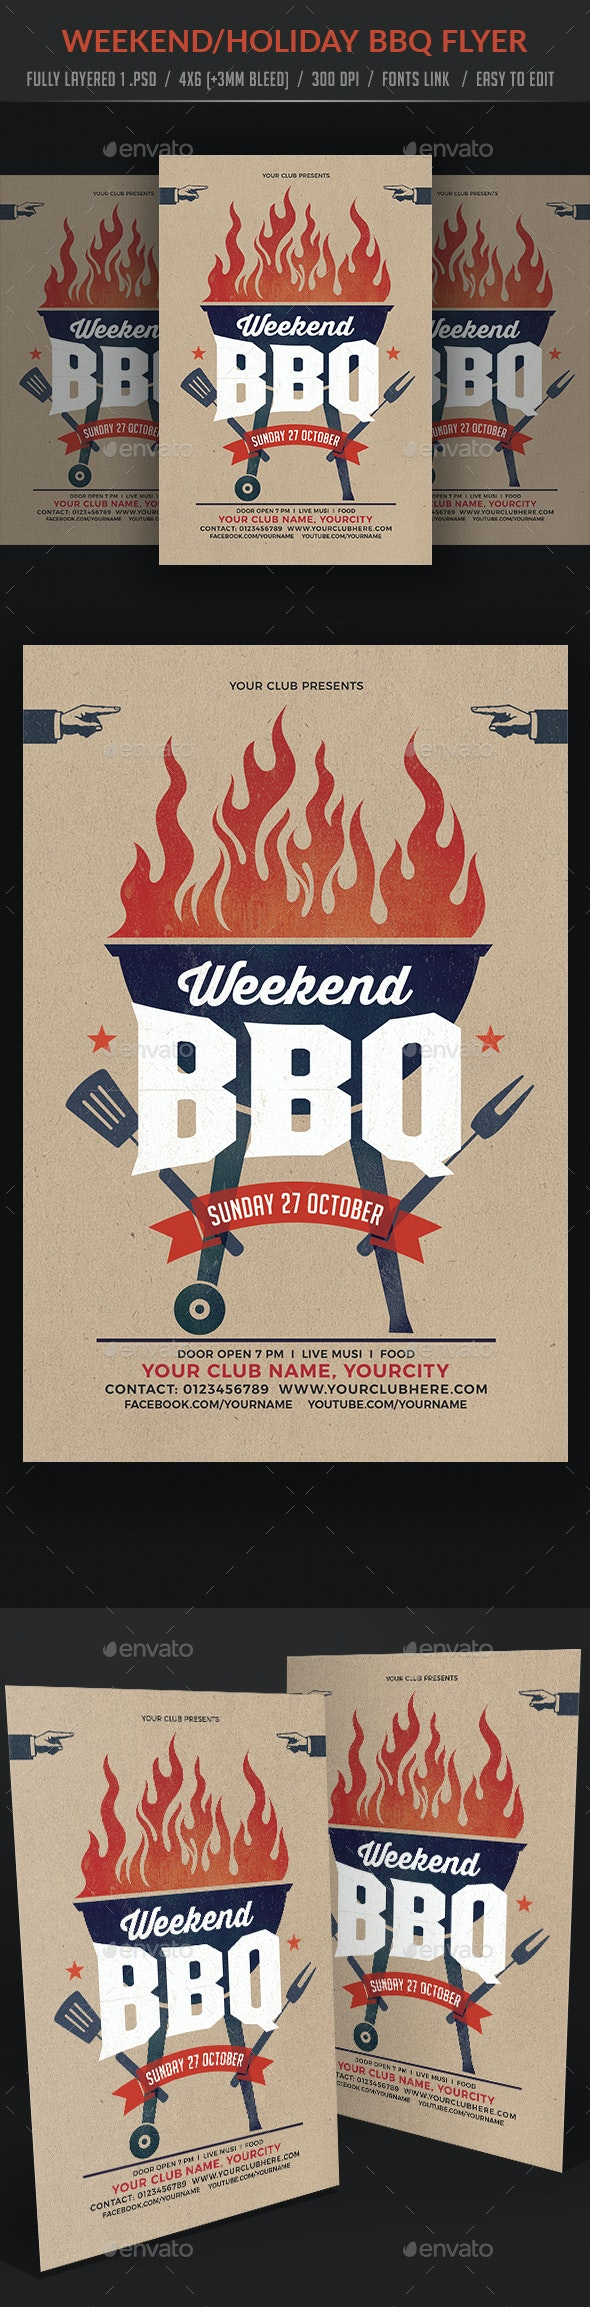 Weekend / Holiday BBQ Party Flyer - Clubs & Parties Events